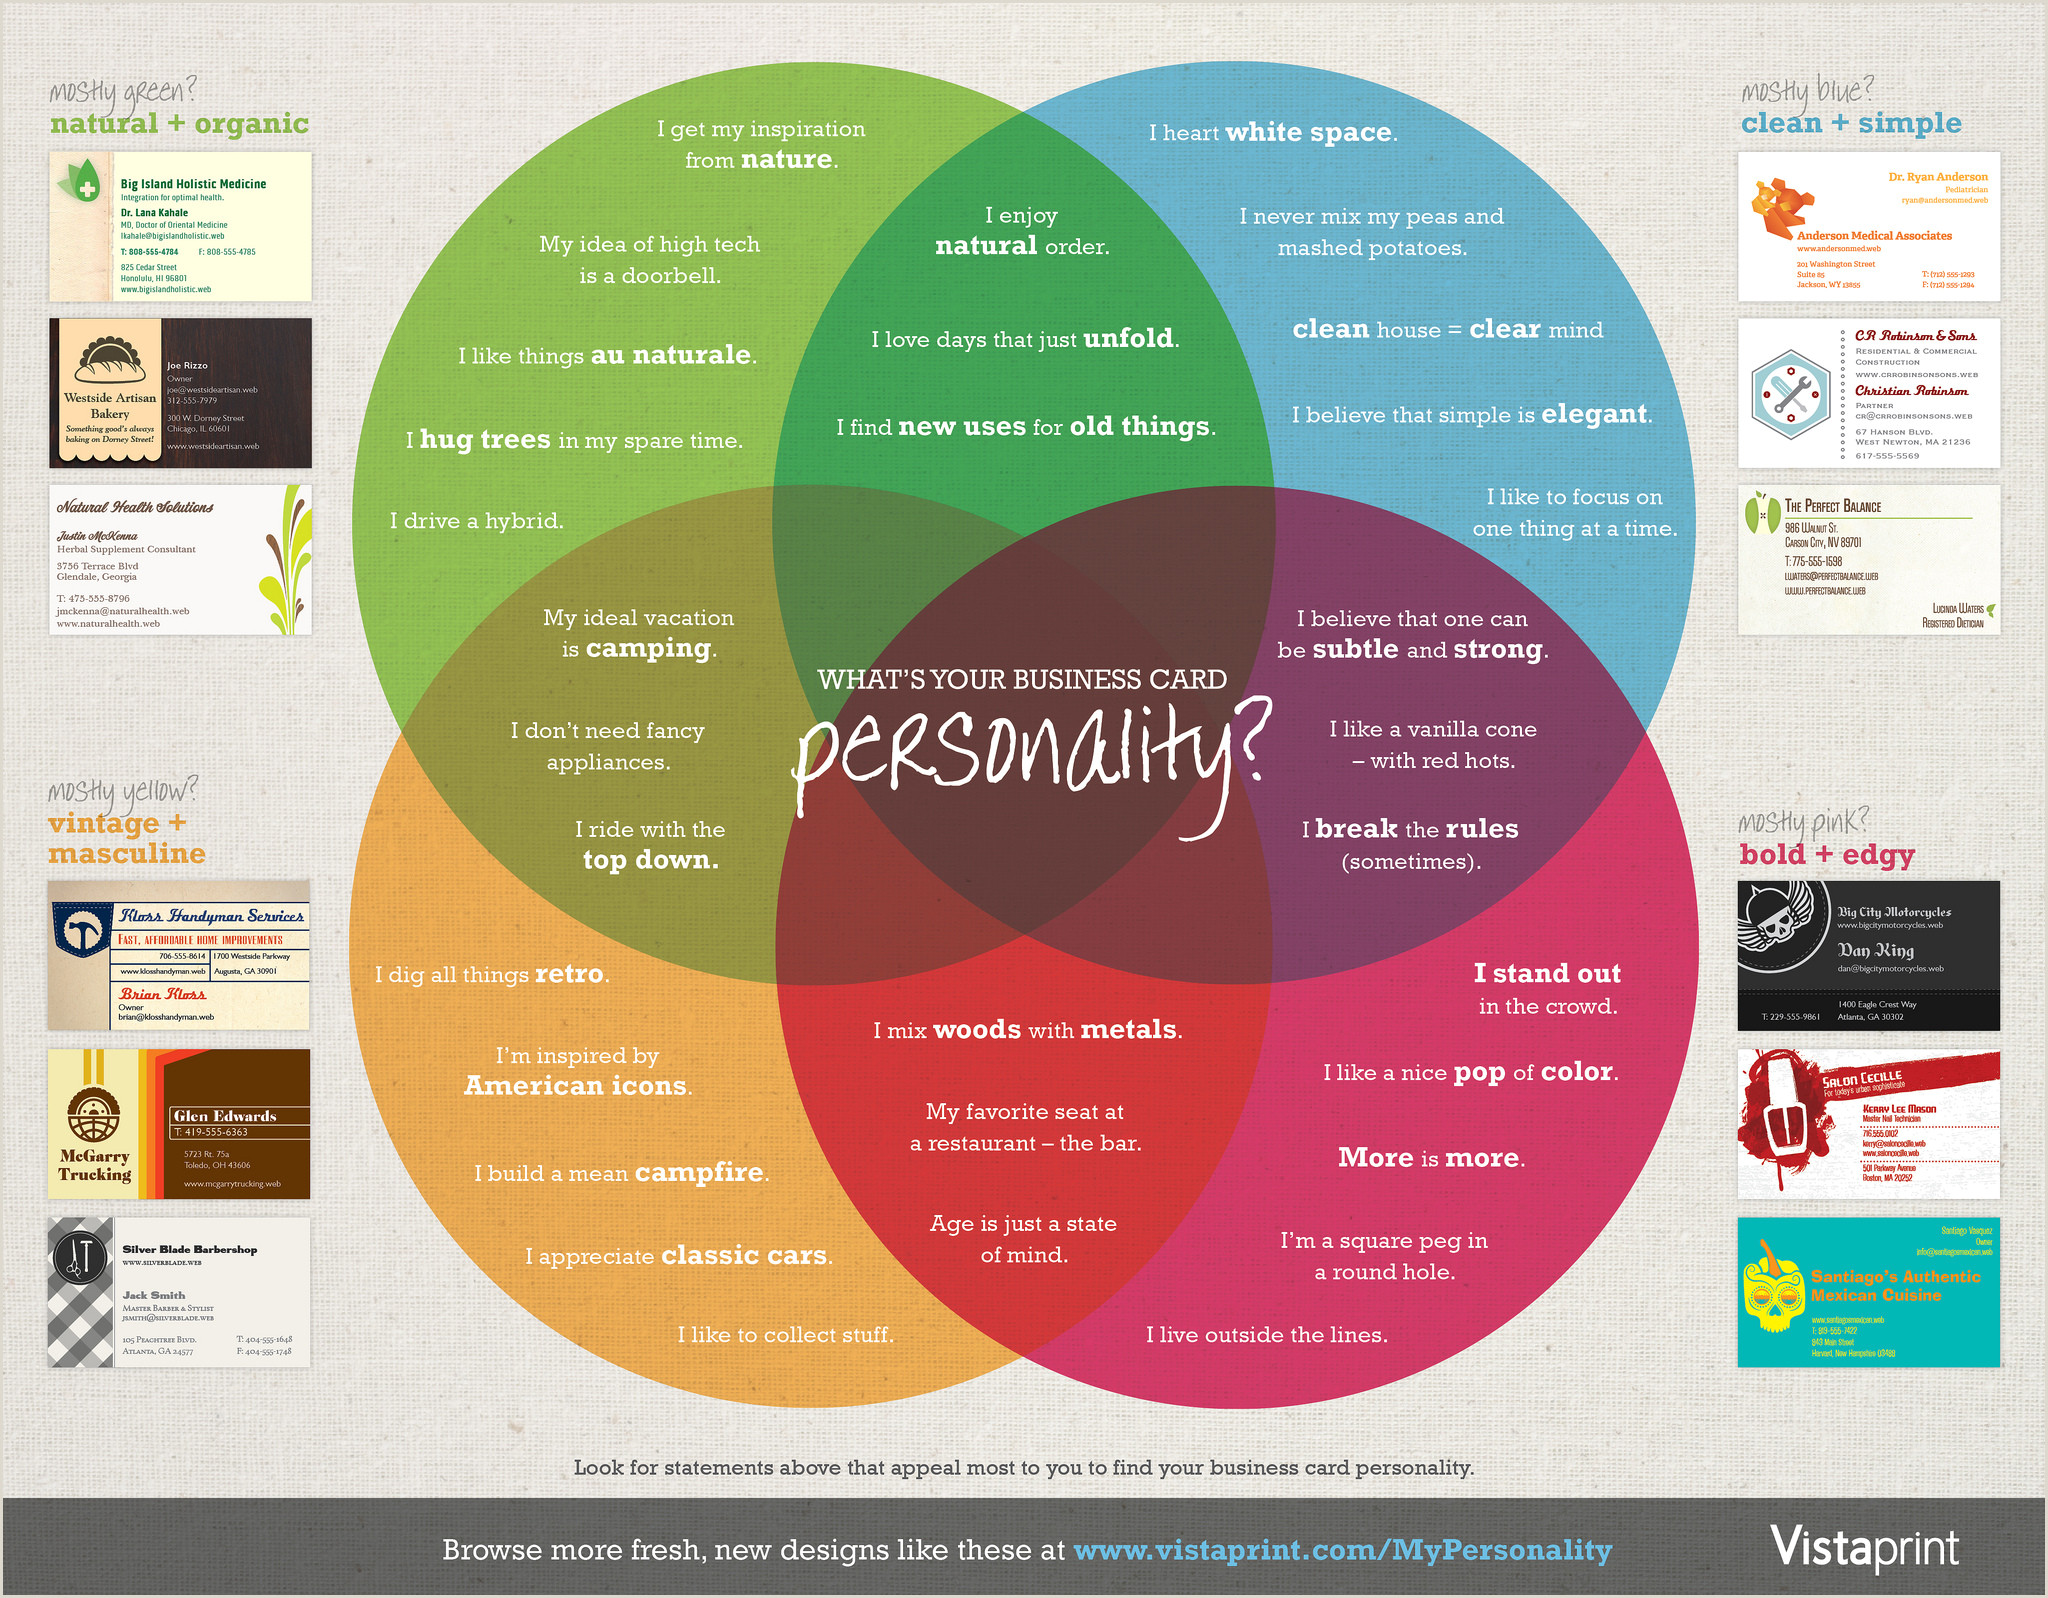 Your Personality Is Your Business Card What S Your Business Card Personality [infographic